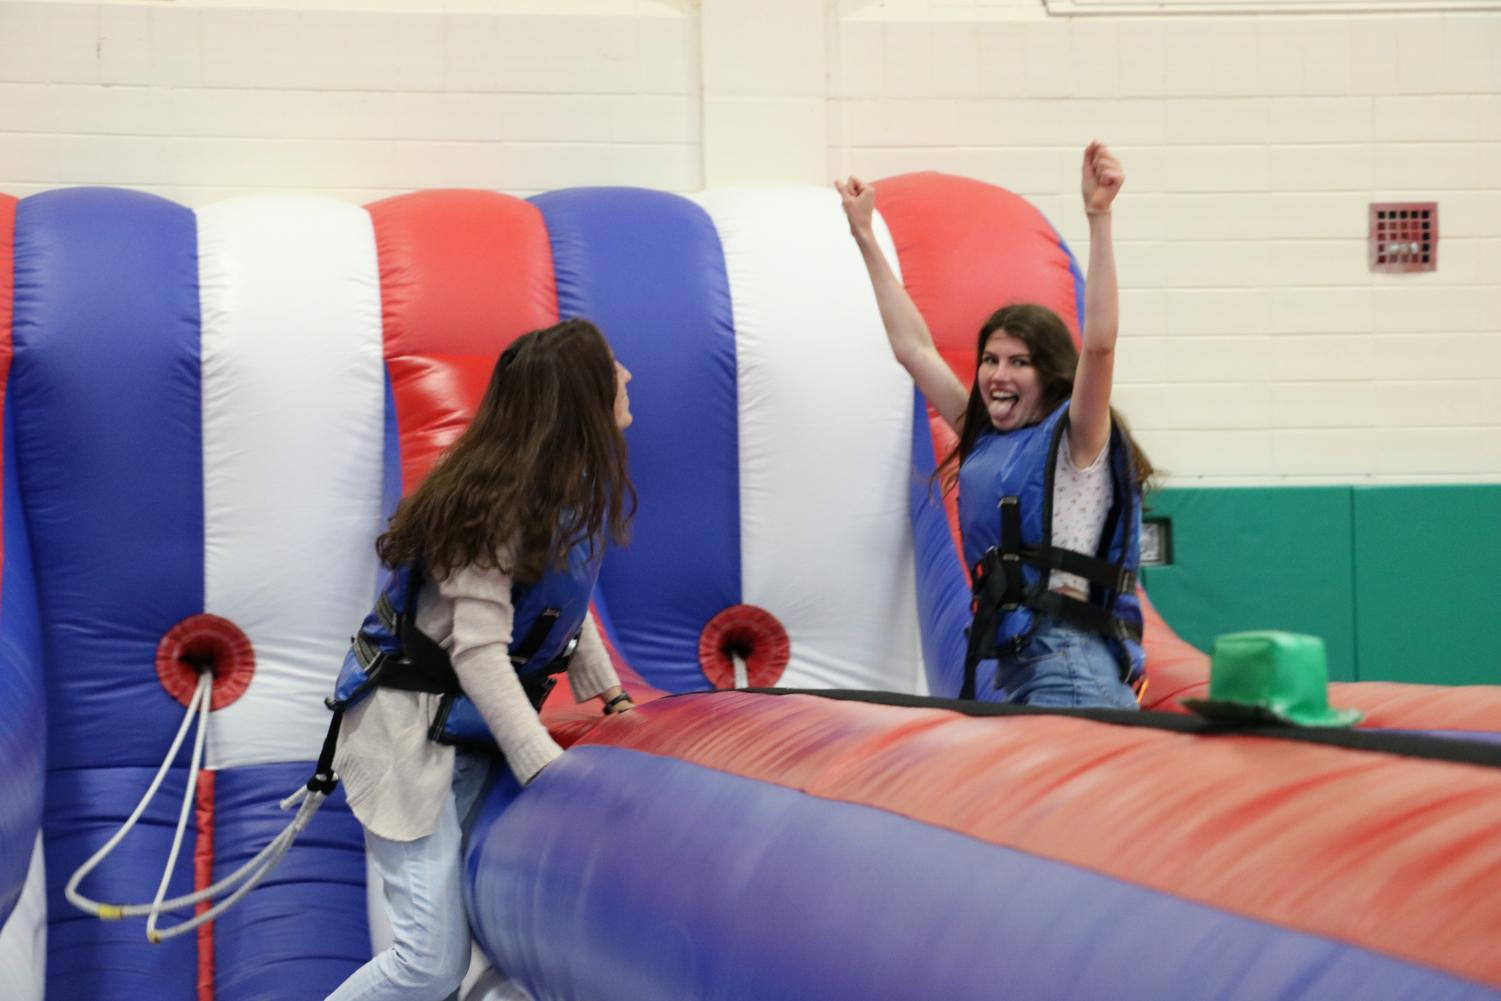 Seniors Anna Morley and Sarah Pinkowksi get pumped up to participate in the bungee run at the senior barbecue. May 17, 2019.